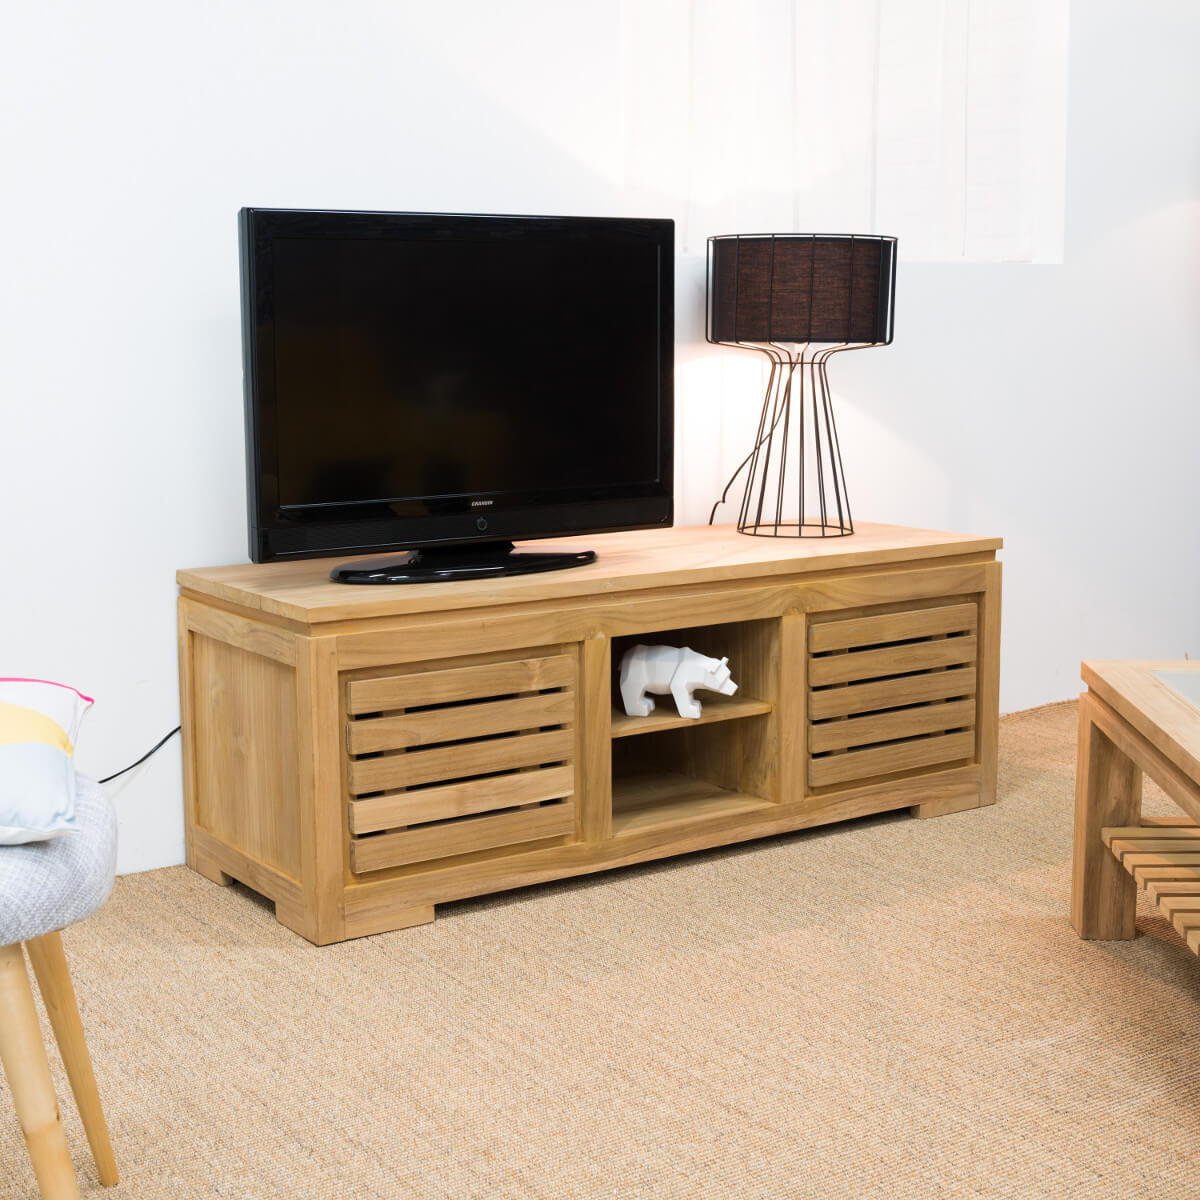 Meuble tv de salon en bois de teck massif zen rectangle for Meuble tv longueur 110 cm